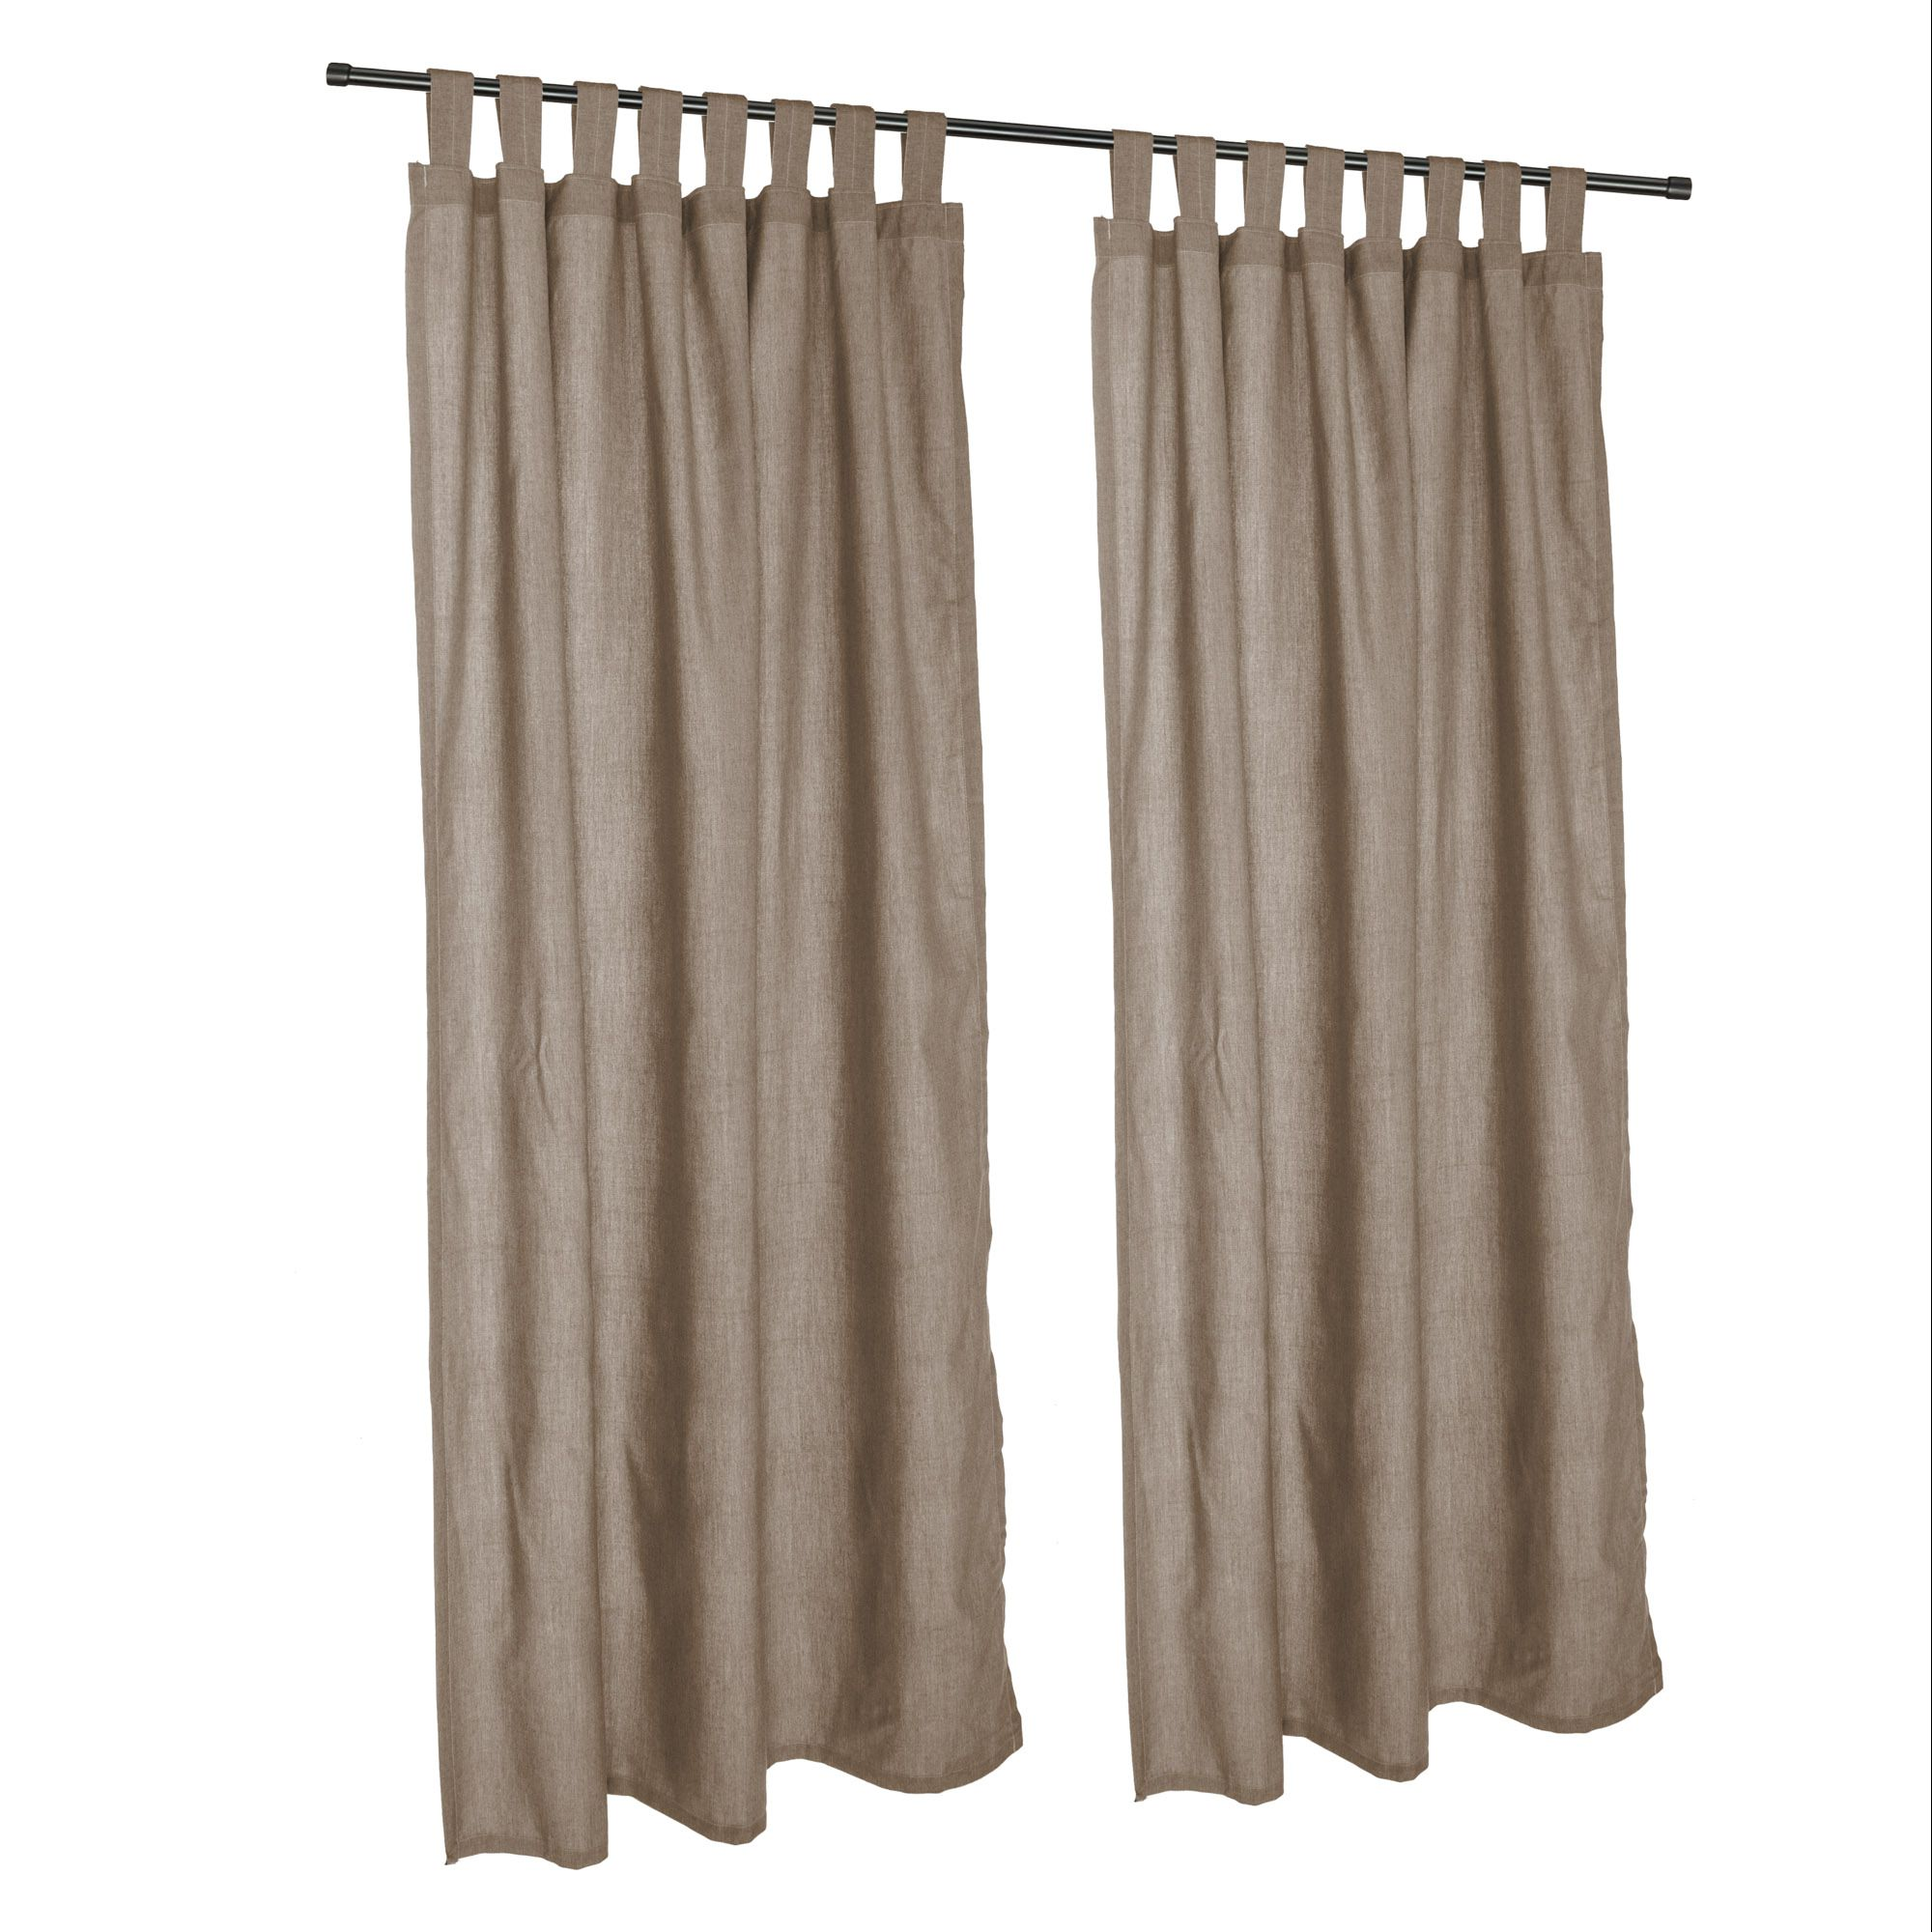 decade panel grommet products top nickel sunbrella pi xx curtains outdoor grommets sand curtain curdsgrs with